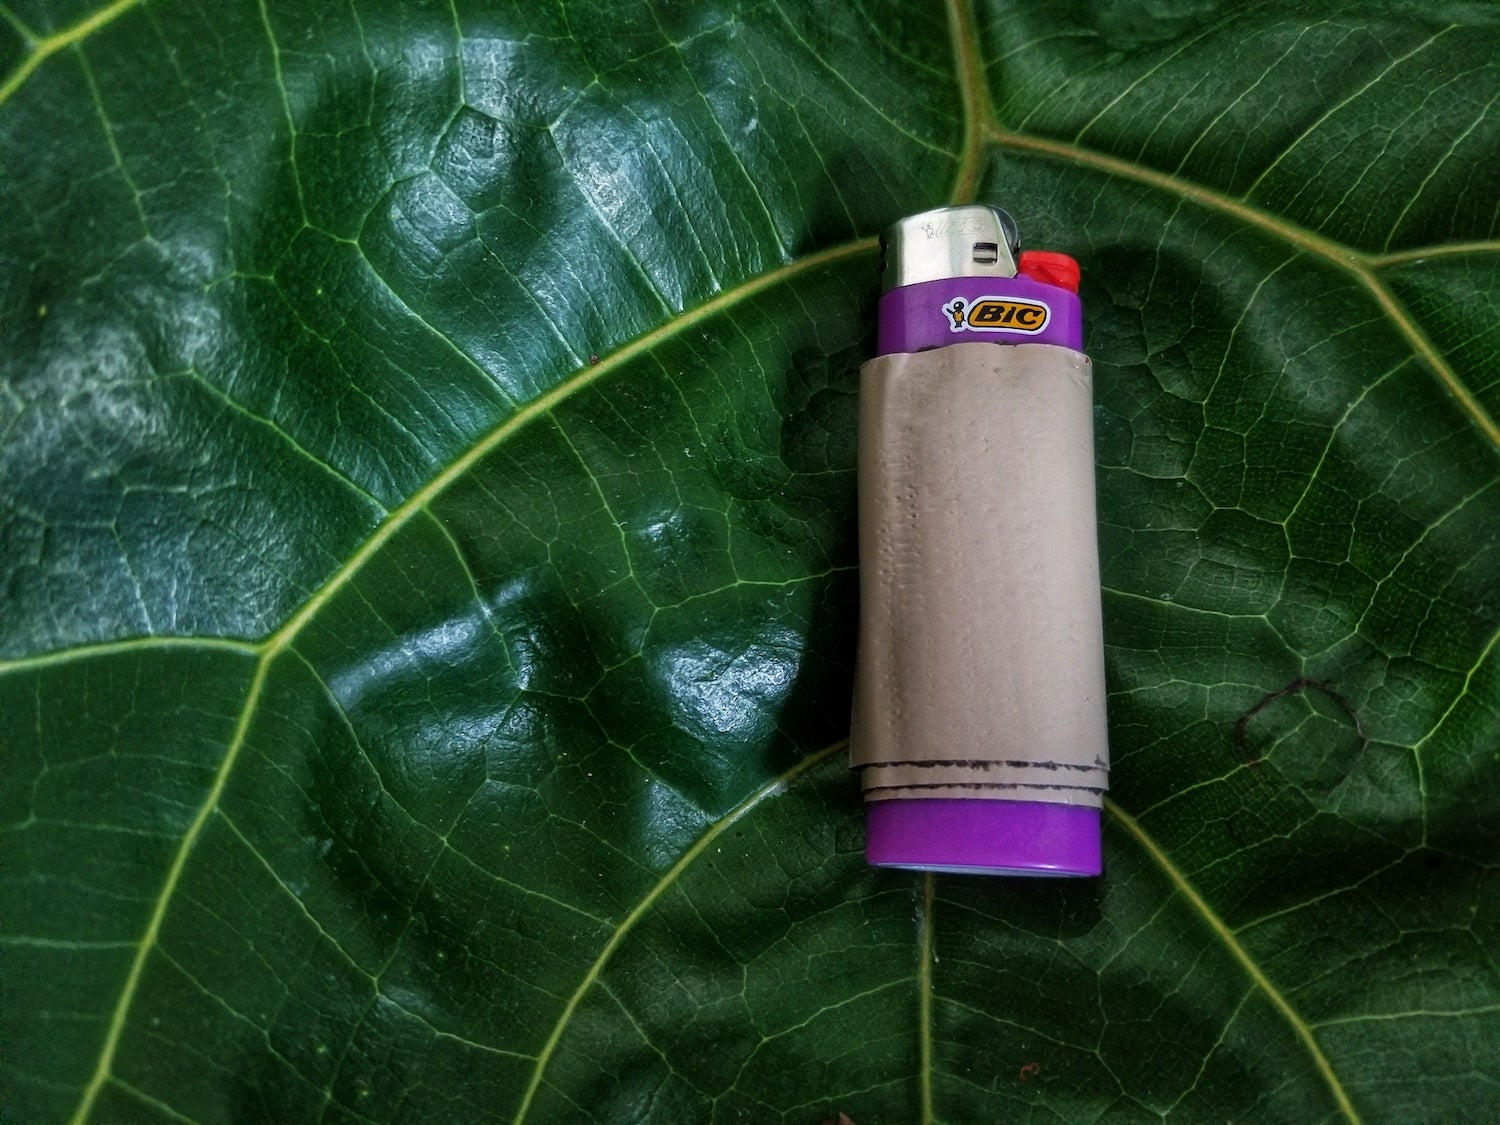 camping hacks for your lighter with duct tape